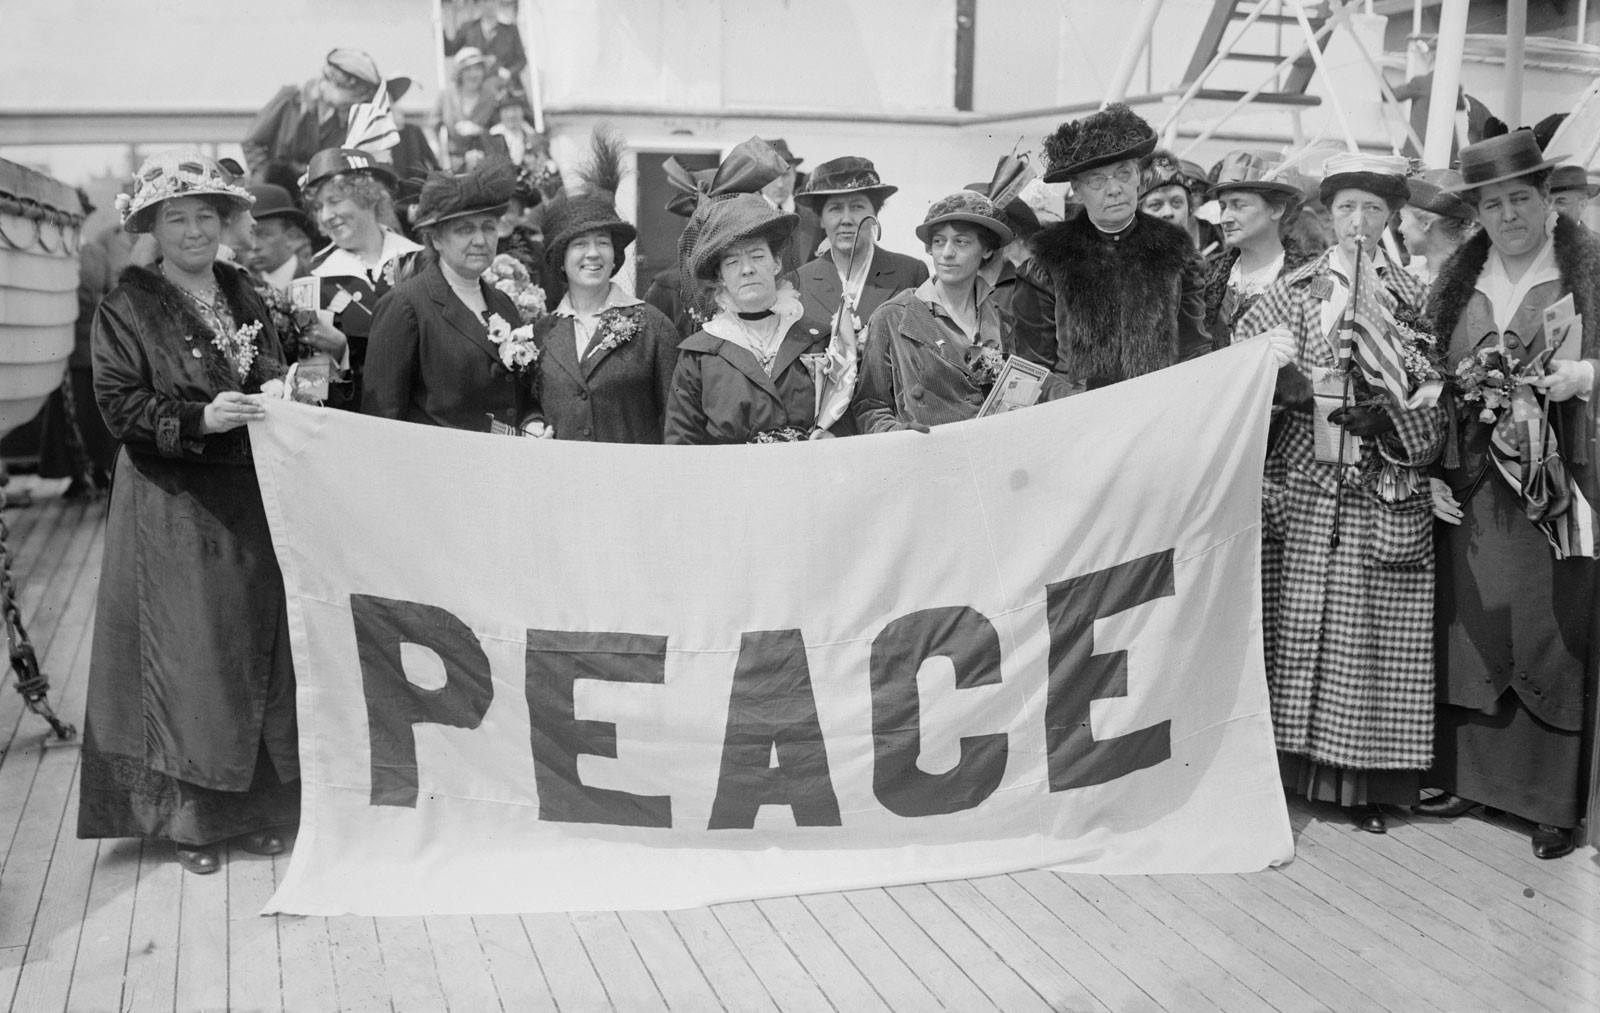 Jane Addams (second from left) and other delegates on the deck of the ship that would take them to The Hague, where the International Women's Congress (1915) was to be held. LOC (George Grantham Bain Collection (LC-DIG-ggbain-18848)